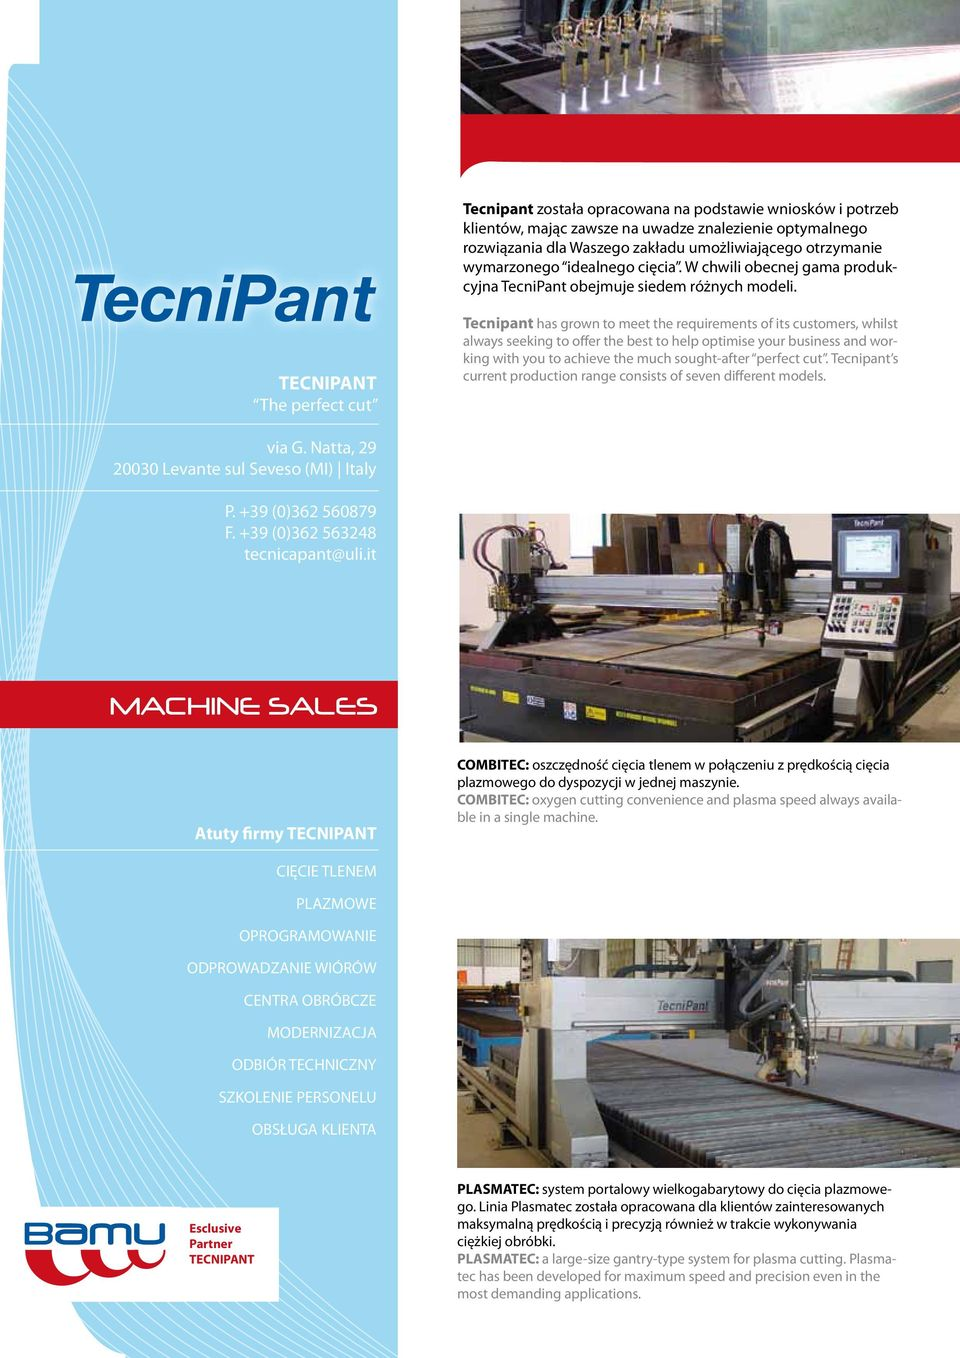 TECNIPANT The perfect cut Tecnipant has grown to meet the requirements of its customers, whilst always seeking to offer the best to help optimise your business and working with you to achieve the